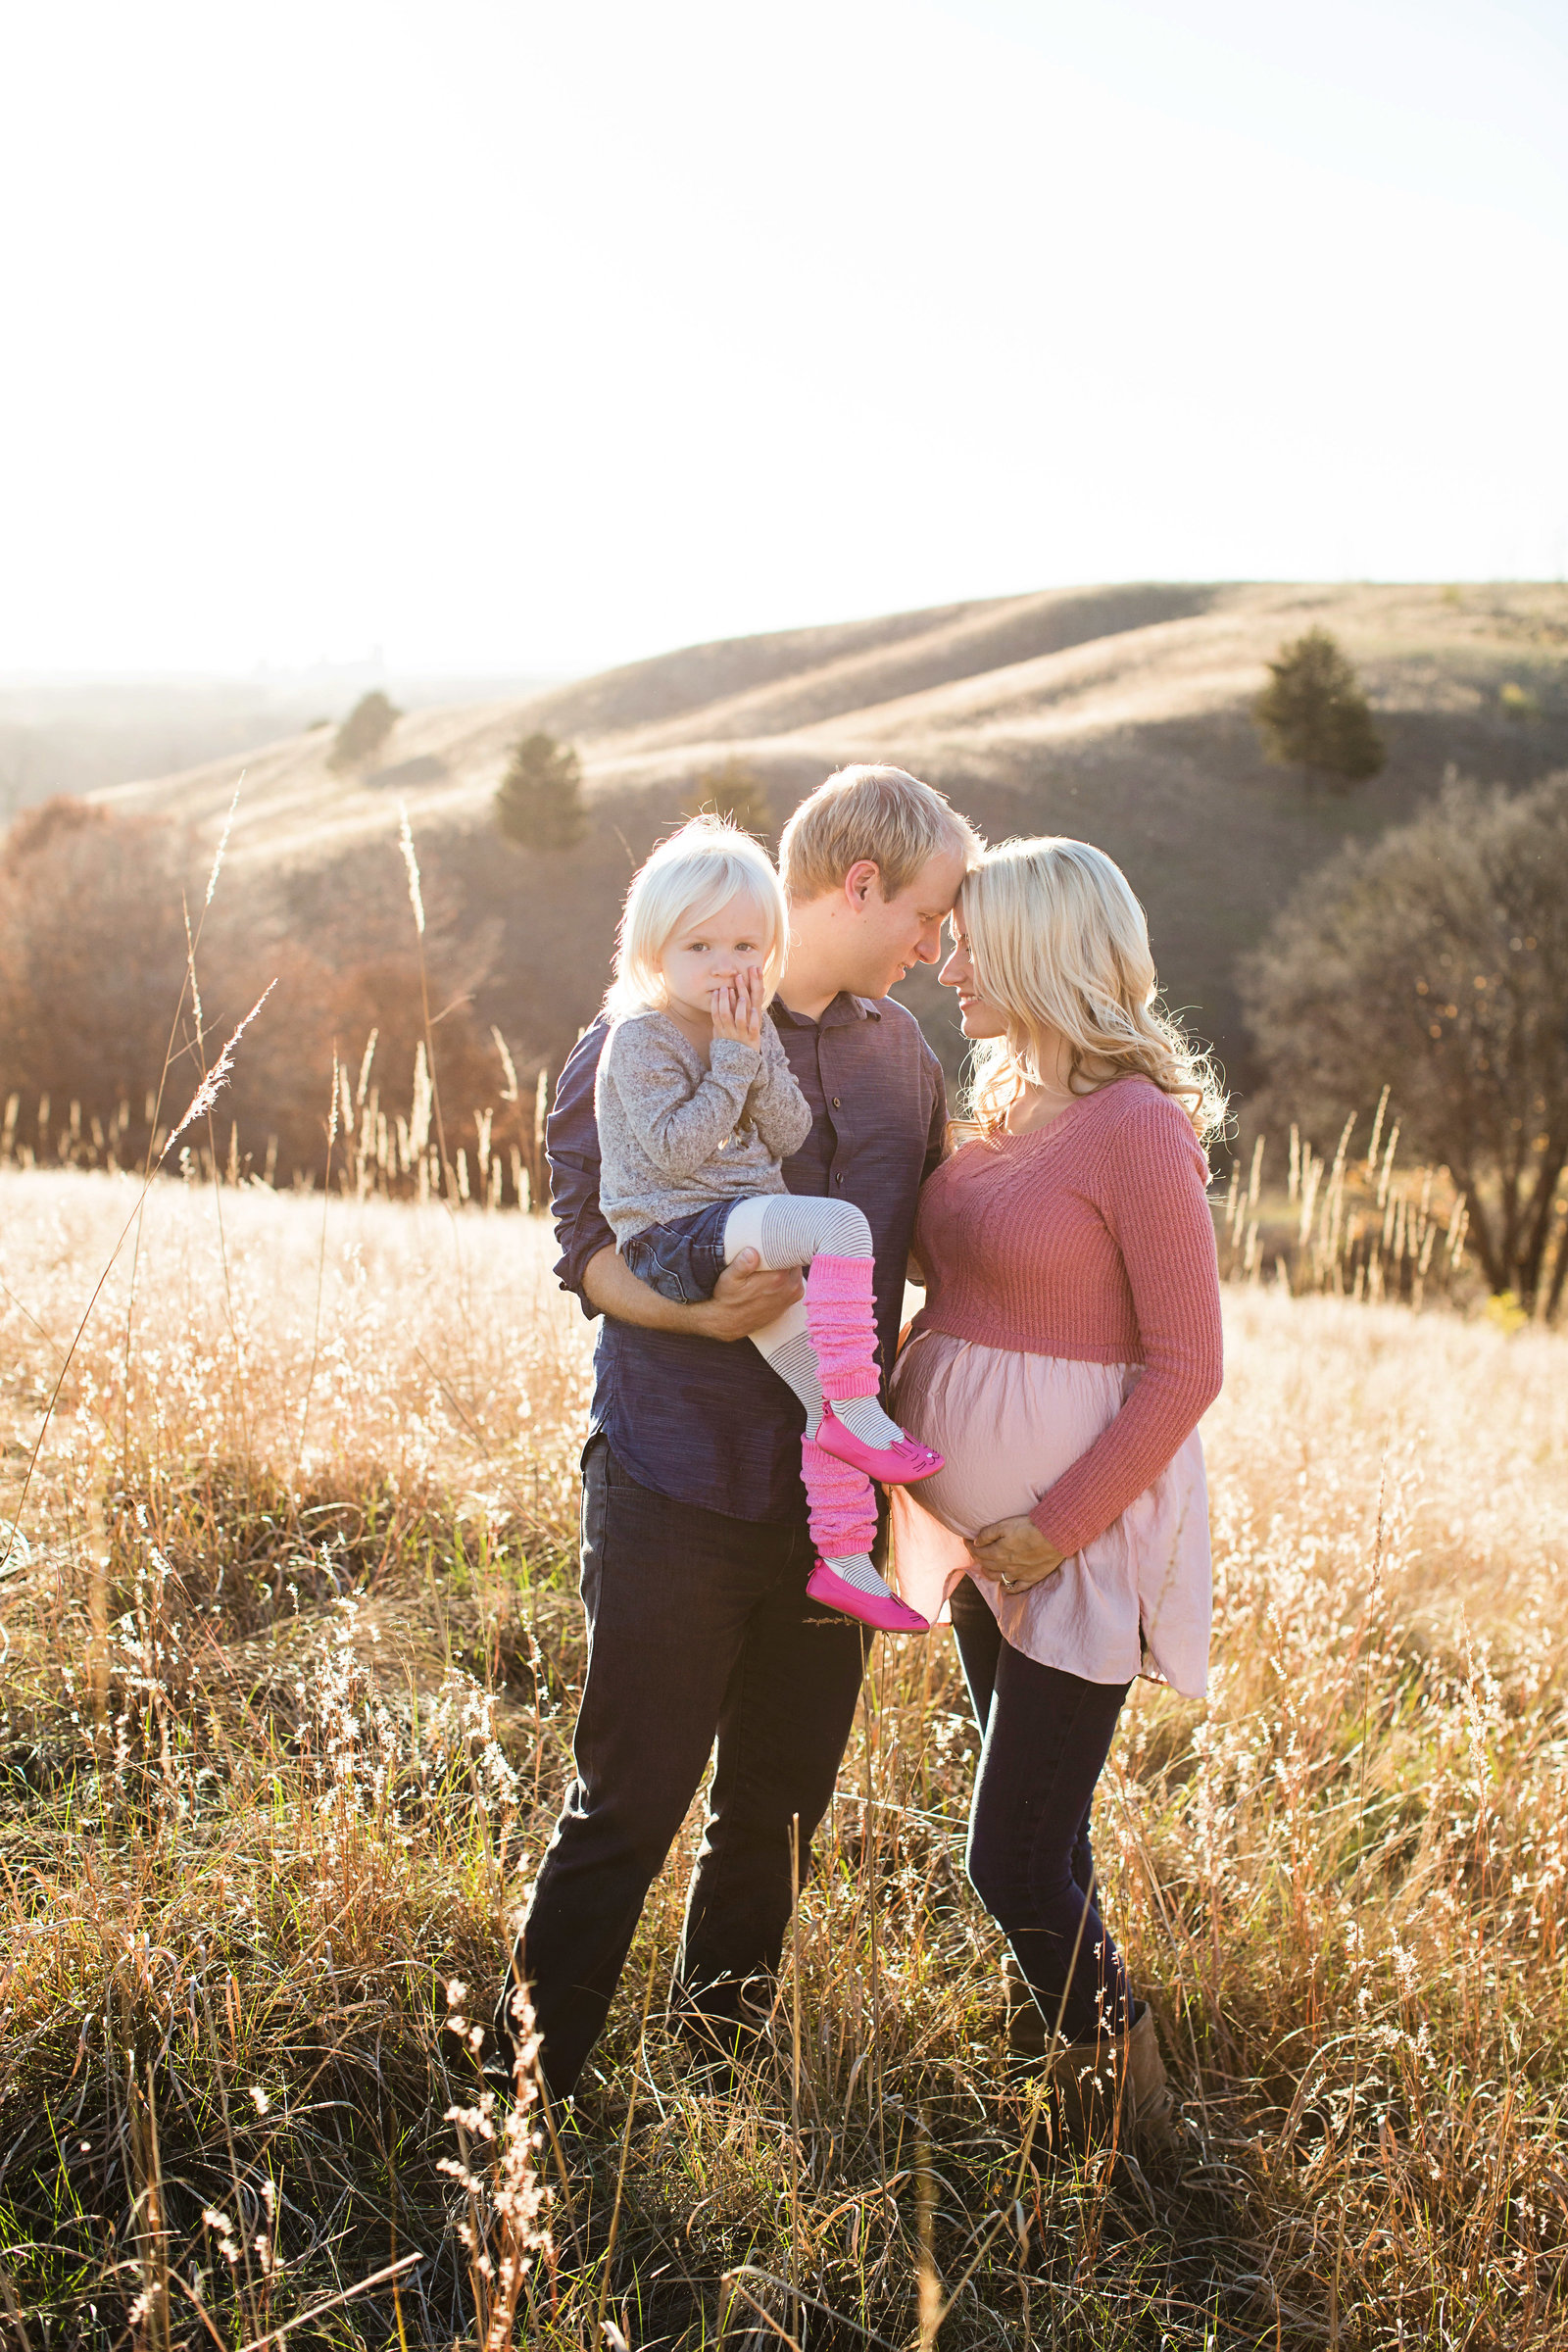 MinneapolisFamilyPhotographer26